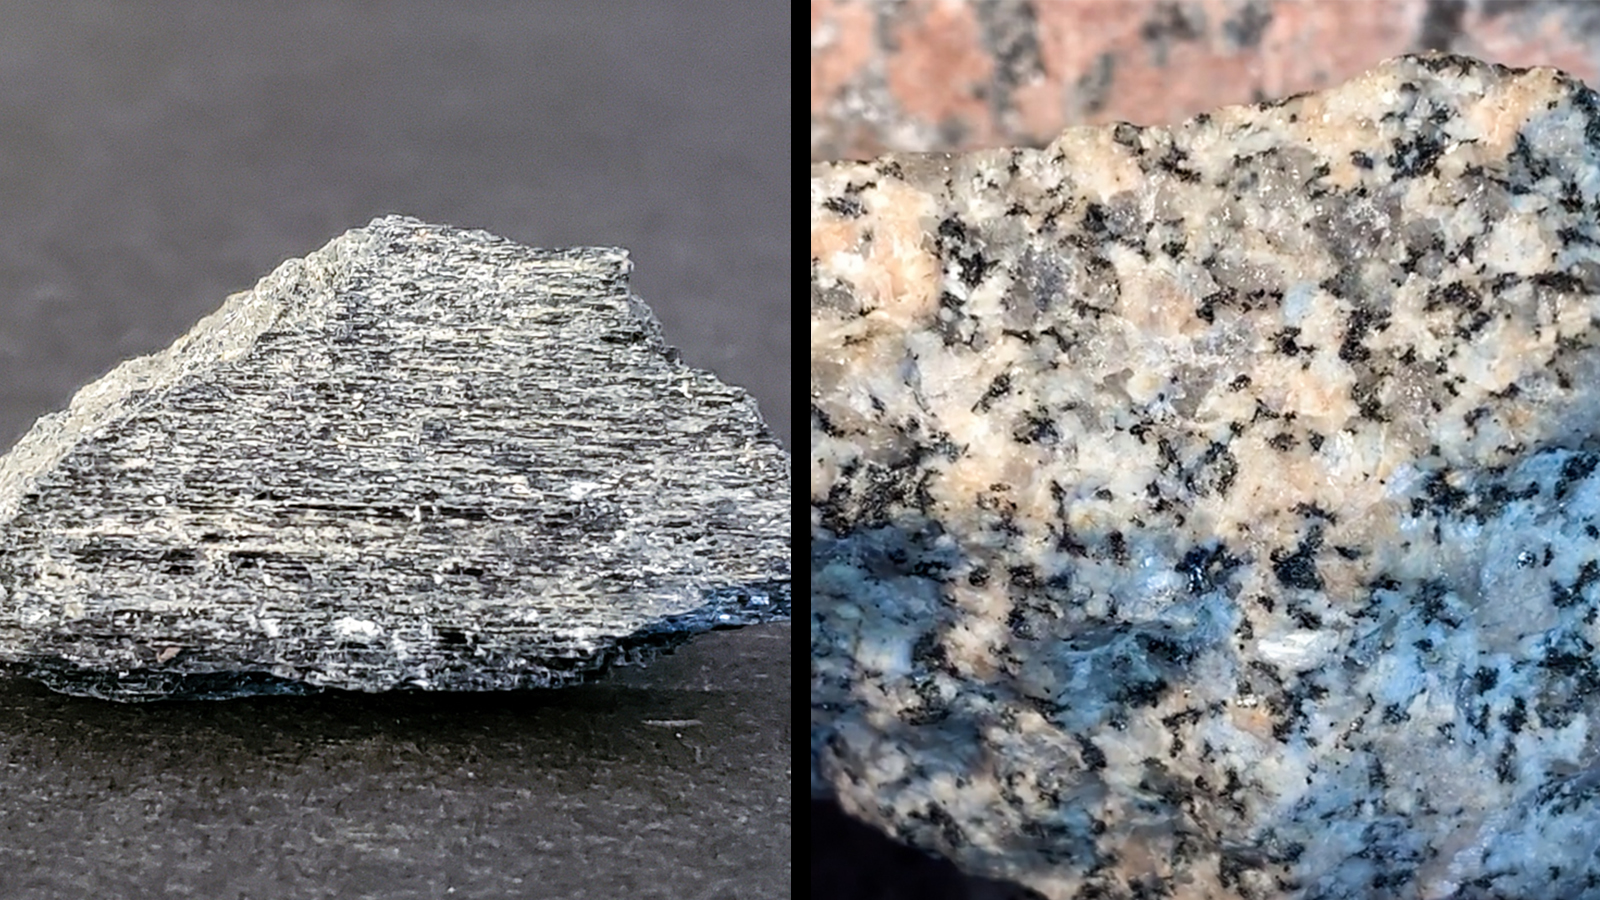 Hornblende is blackish-gray and more homogeneous while granite is pinkish-white and more heterogeneous.